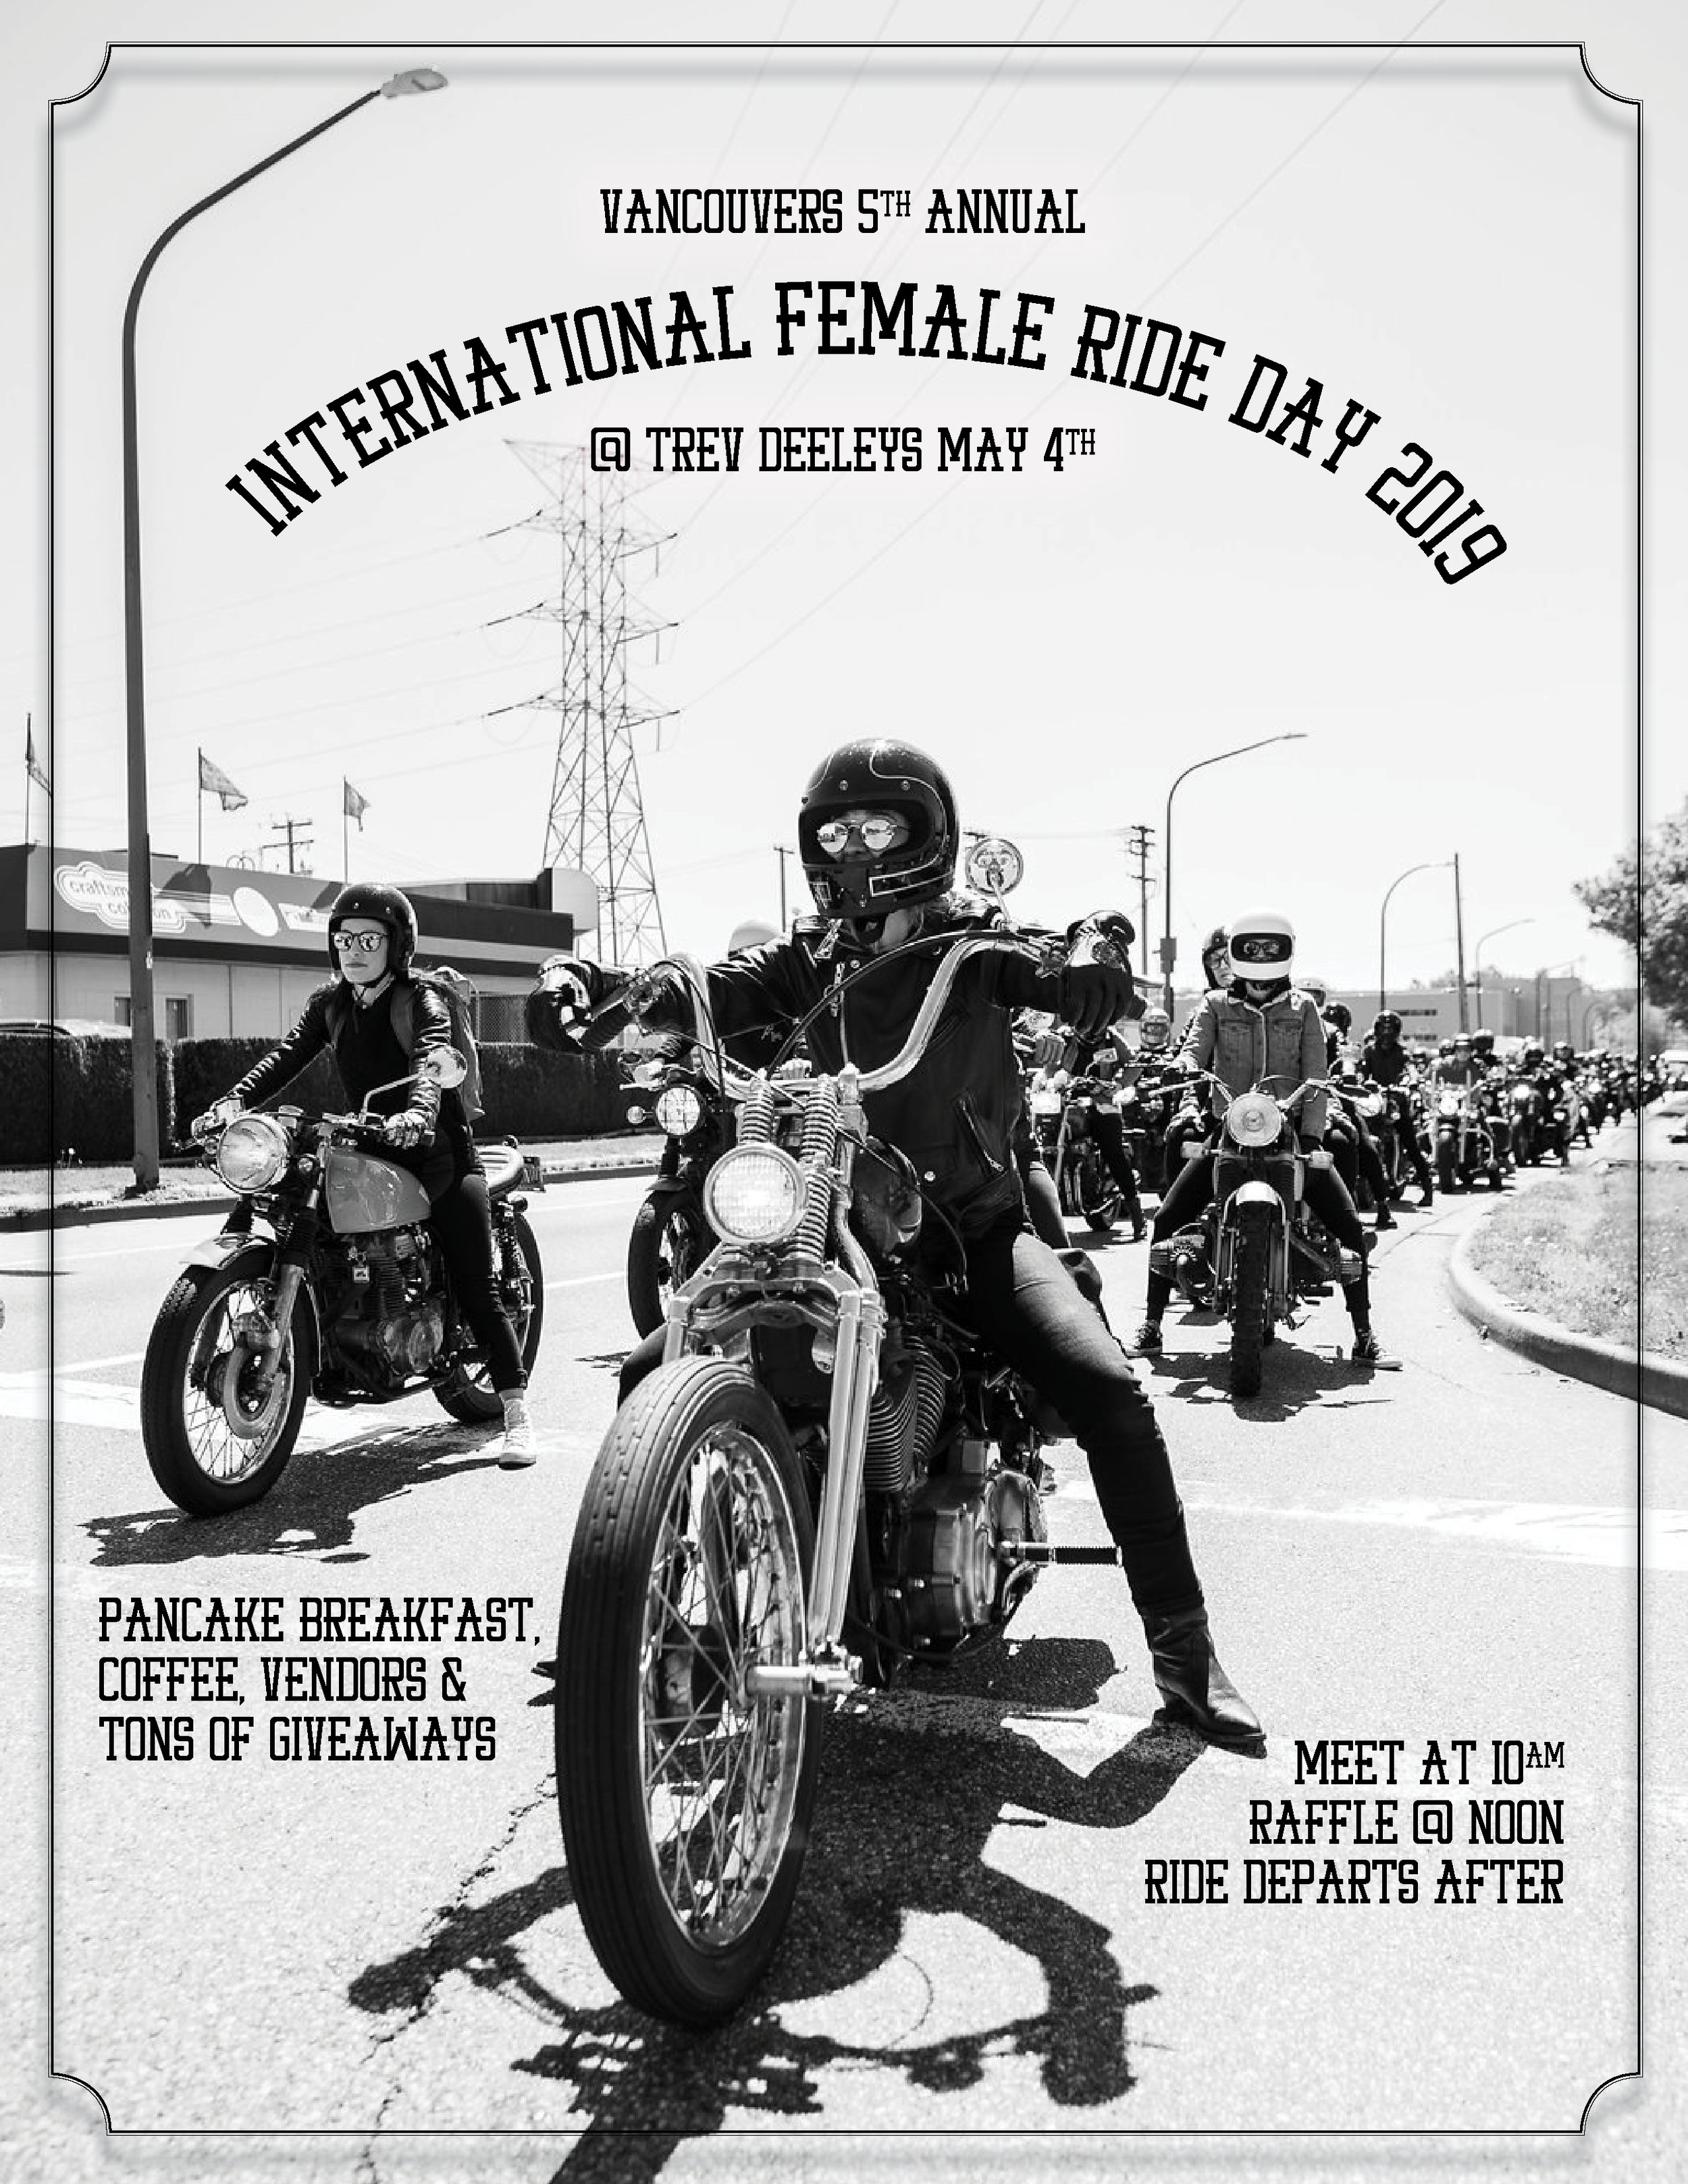 International Female Ride Day 2019